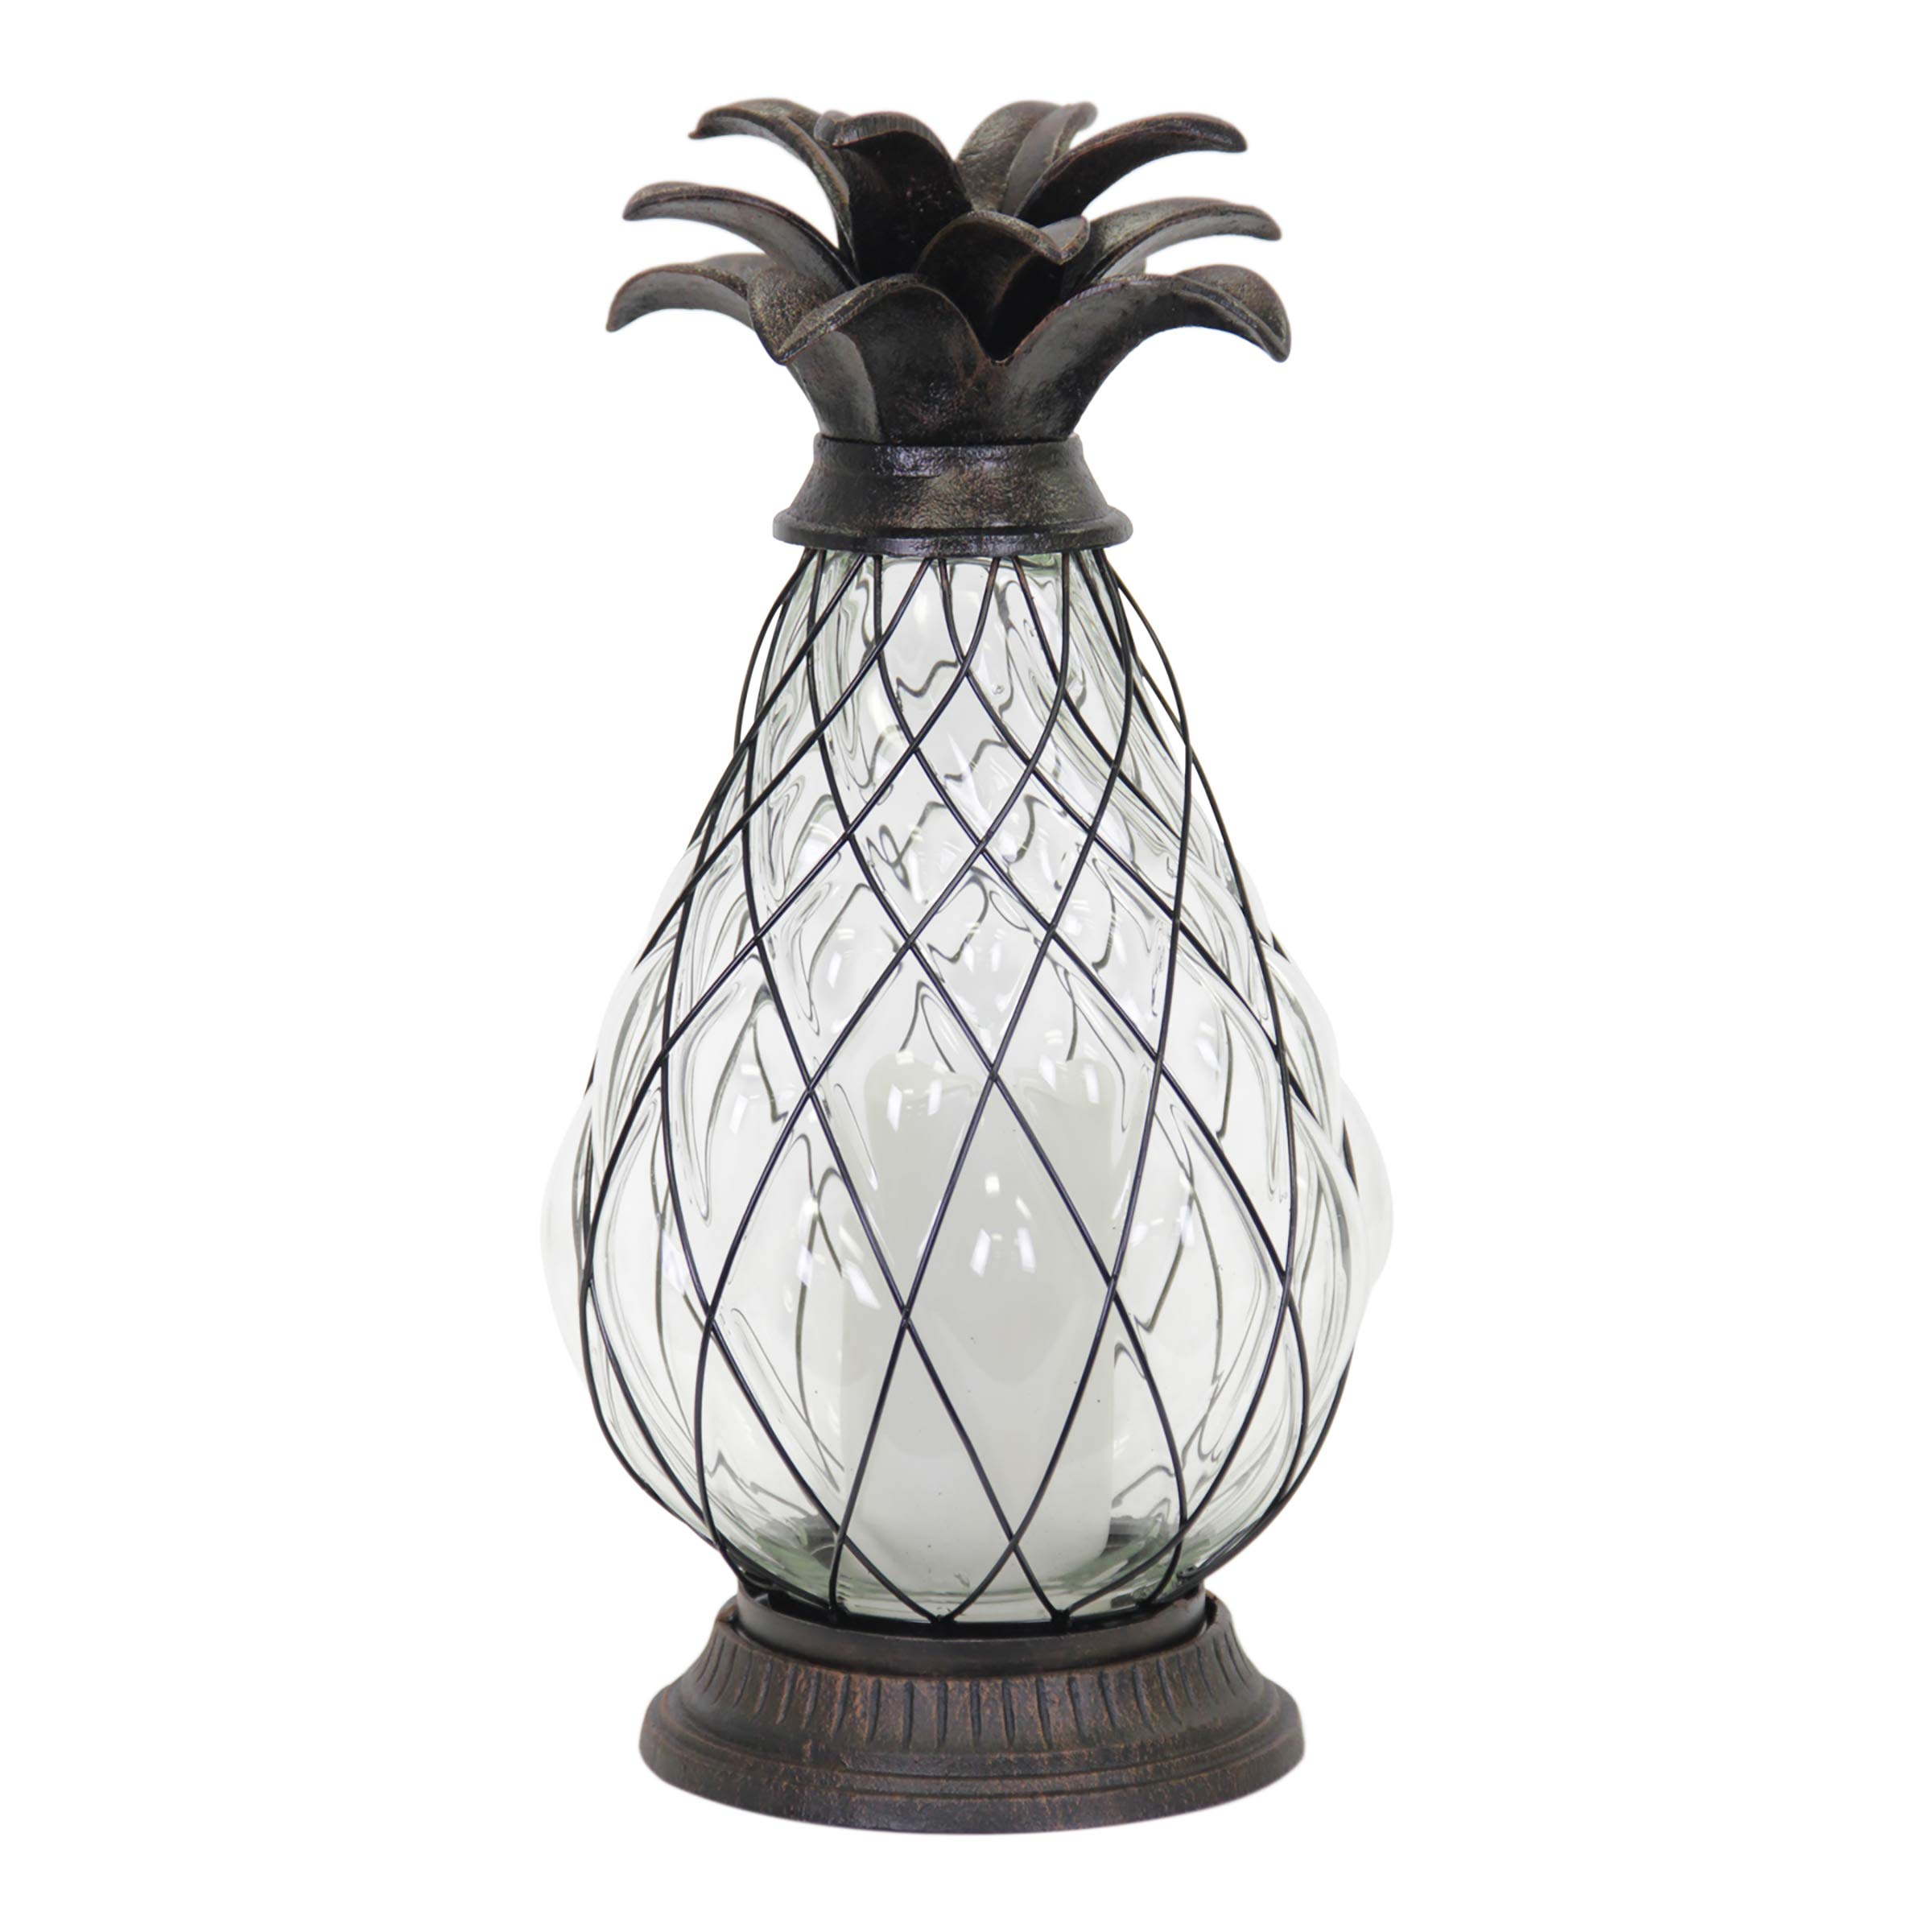 Exhart Pineapple Cast Iron Lantern Battery Powered 12 LED Firefly Lantern - Outdoor Pineapple Décor Tabletop Glass Lantern in Metal Cage - Pineapple LED Metal Lantern - Clear Glass 6'' L x6 W x17 H by Exhart